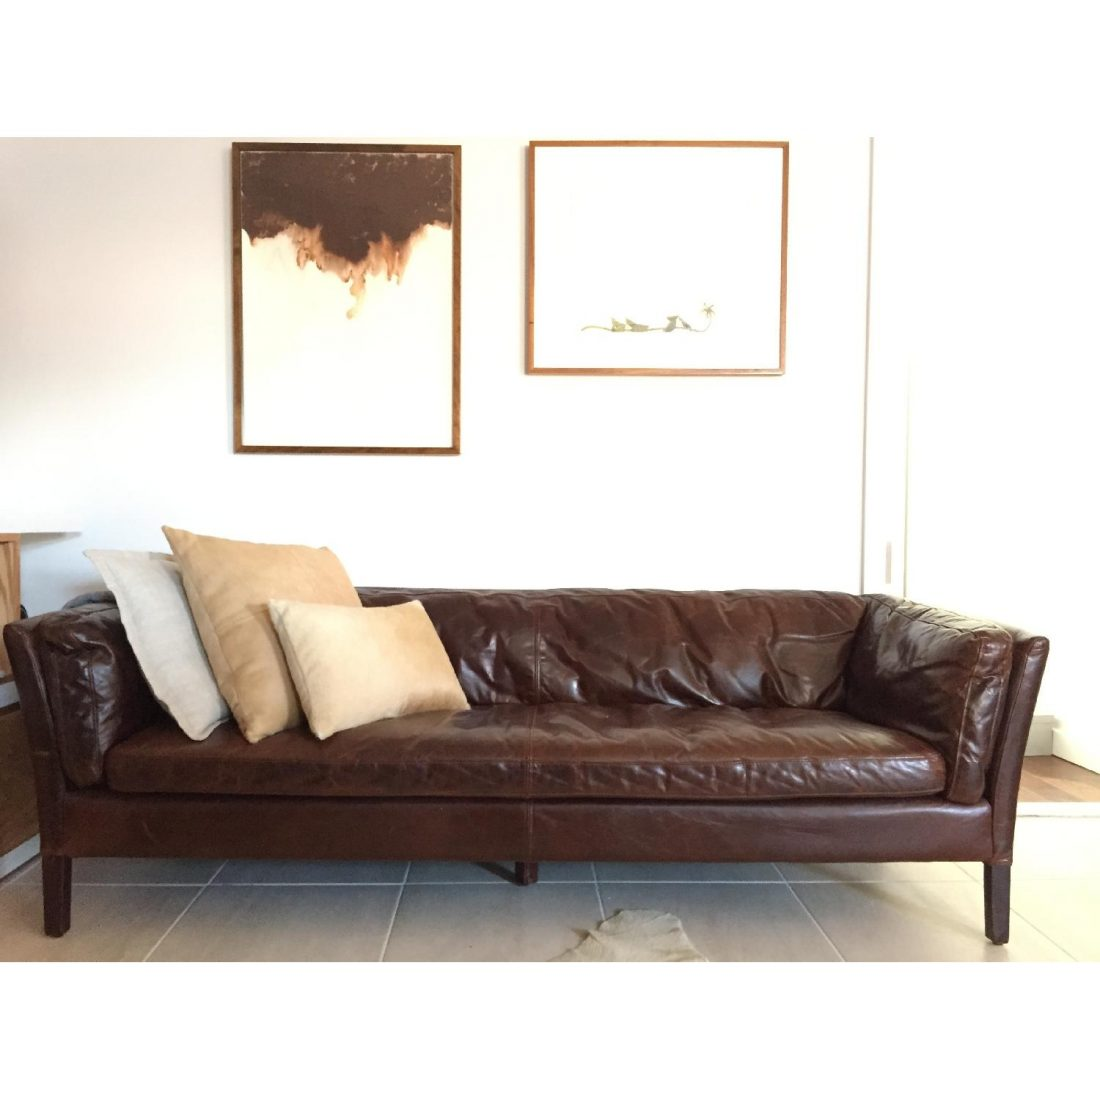 Restoration Hardware Leather : Restoration hardware sorensen leather sofa copy cat chic